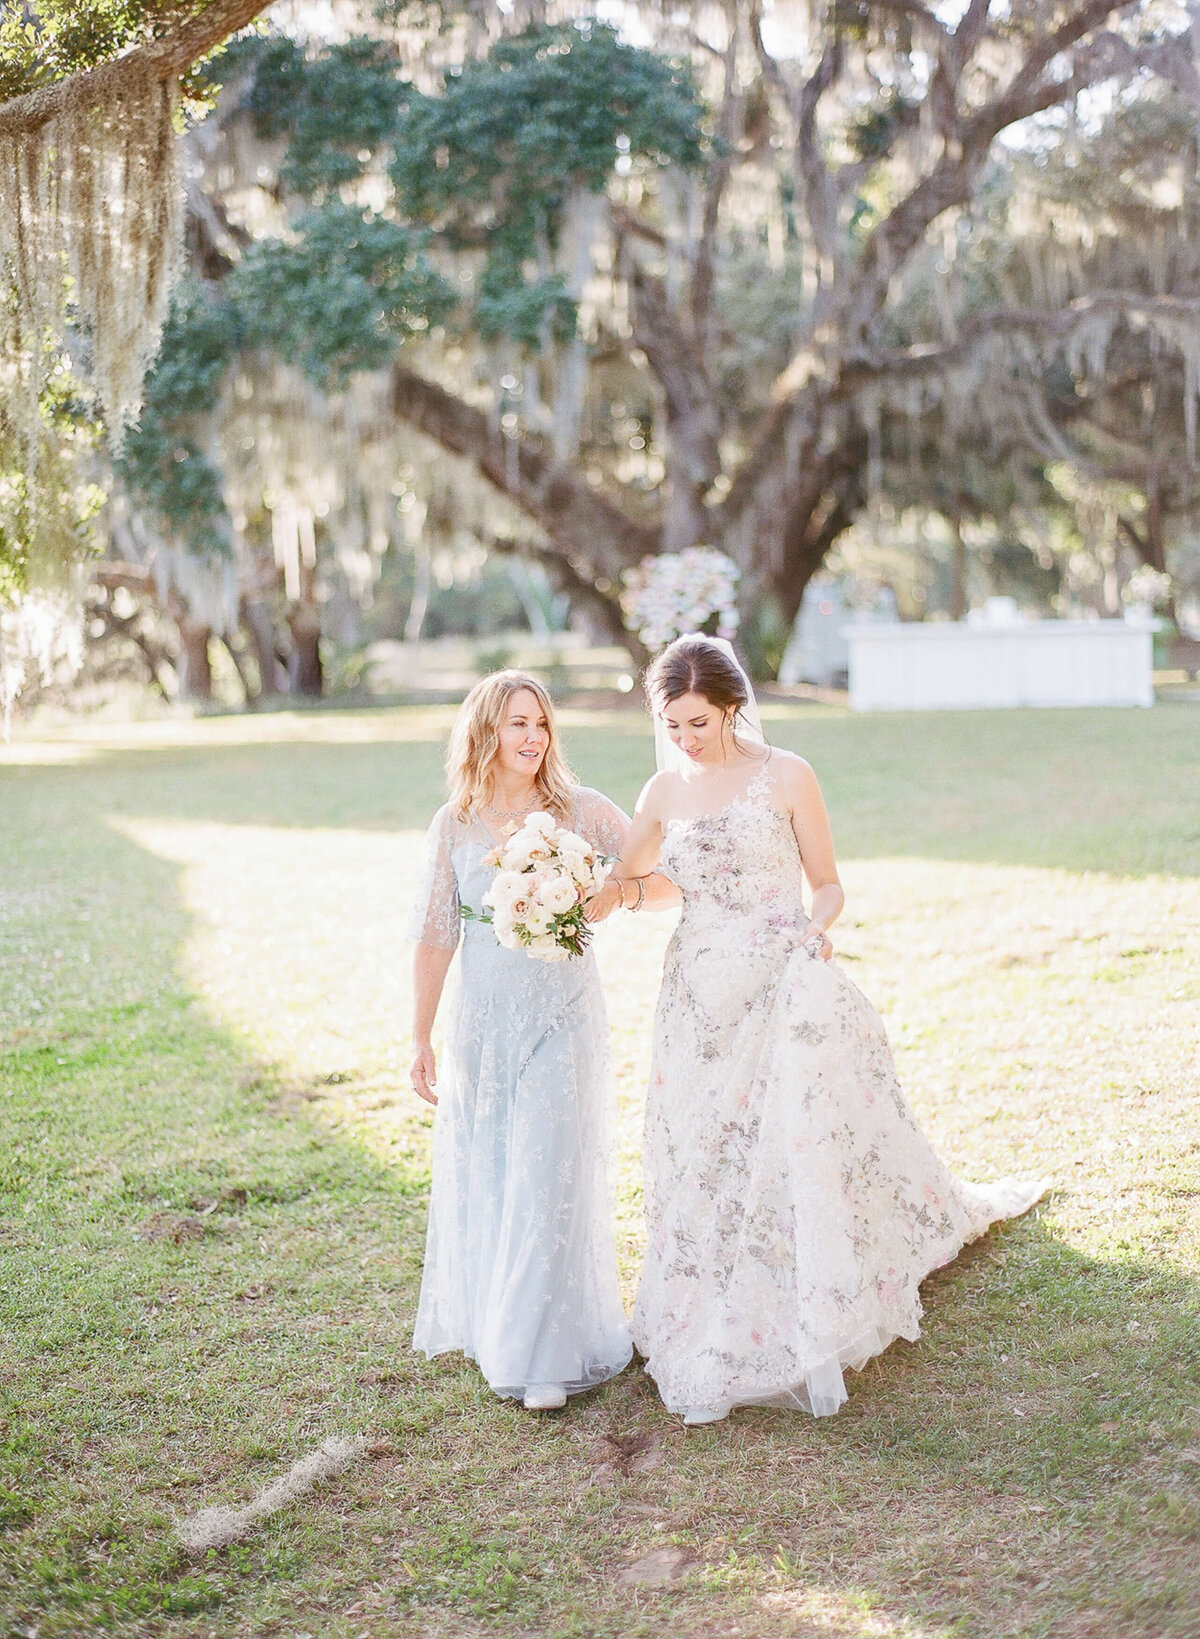 kiawah-river-wedding-clay-austin-photography-53